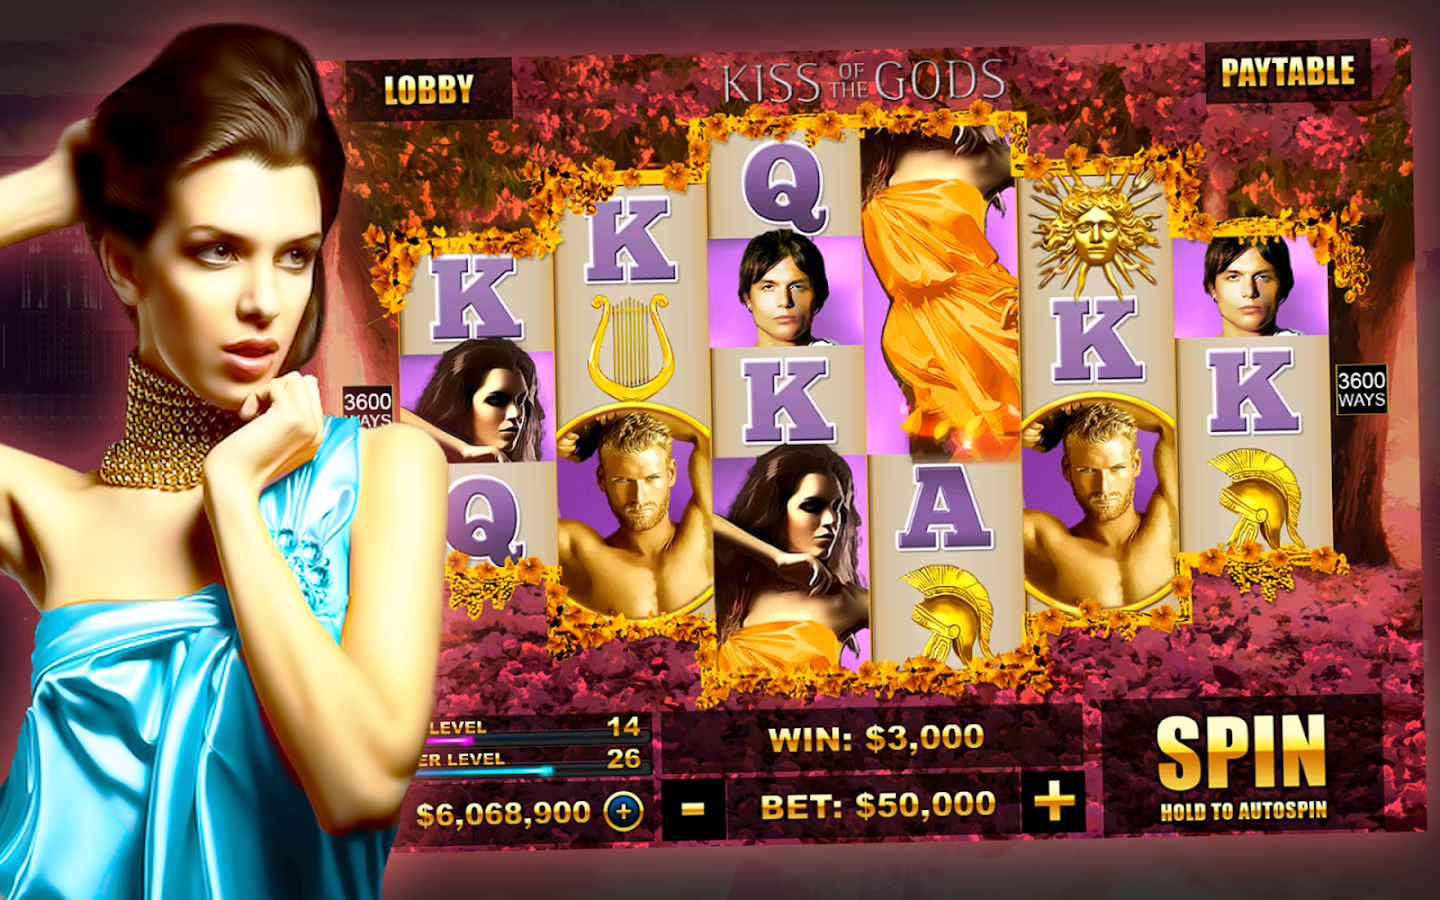 Princess of the Amazon Slots - Play it Now for Free